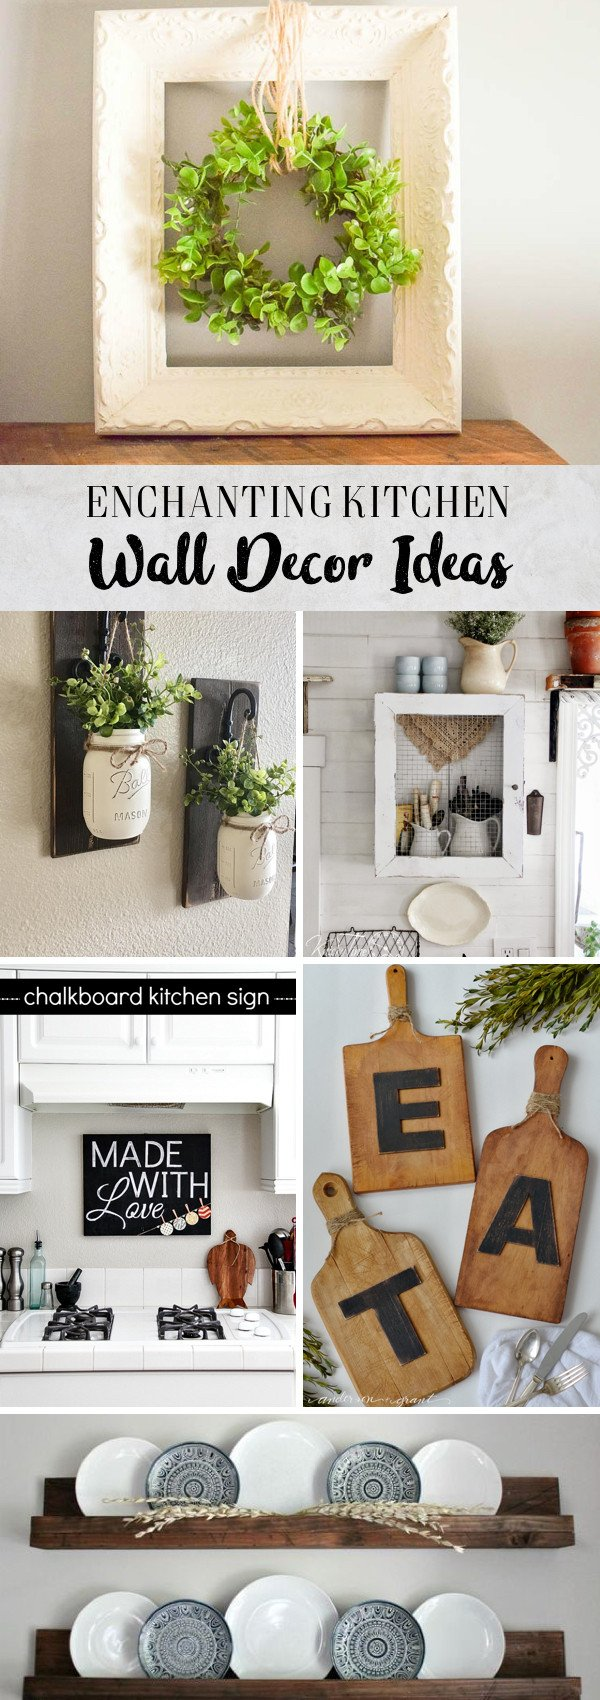 Decor Ideas for Kitchen Walls Luxury 30 Enchanting Kitchen Wall Decor Ideas that are Oozing with Style